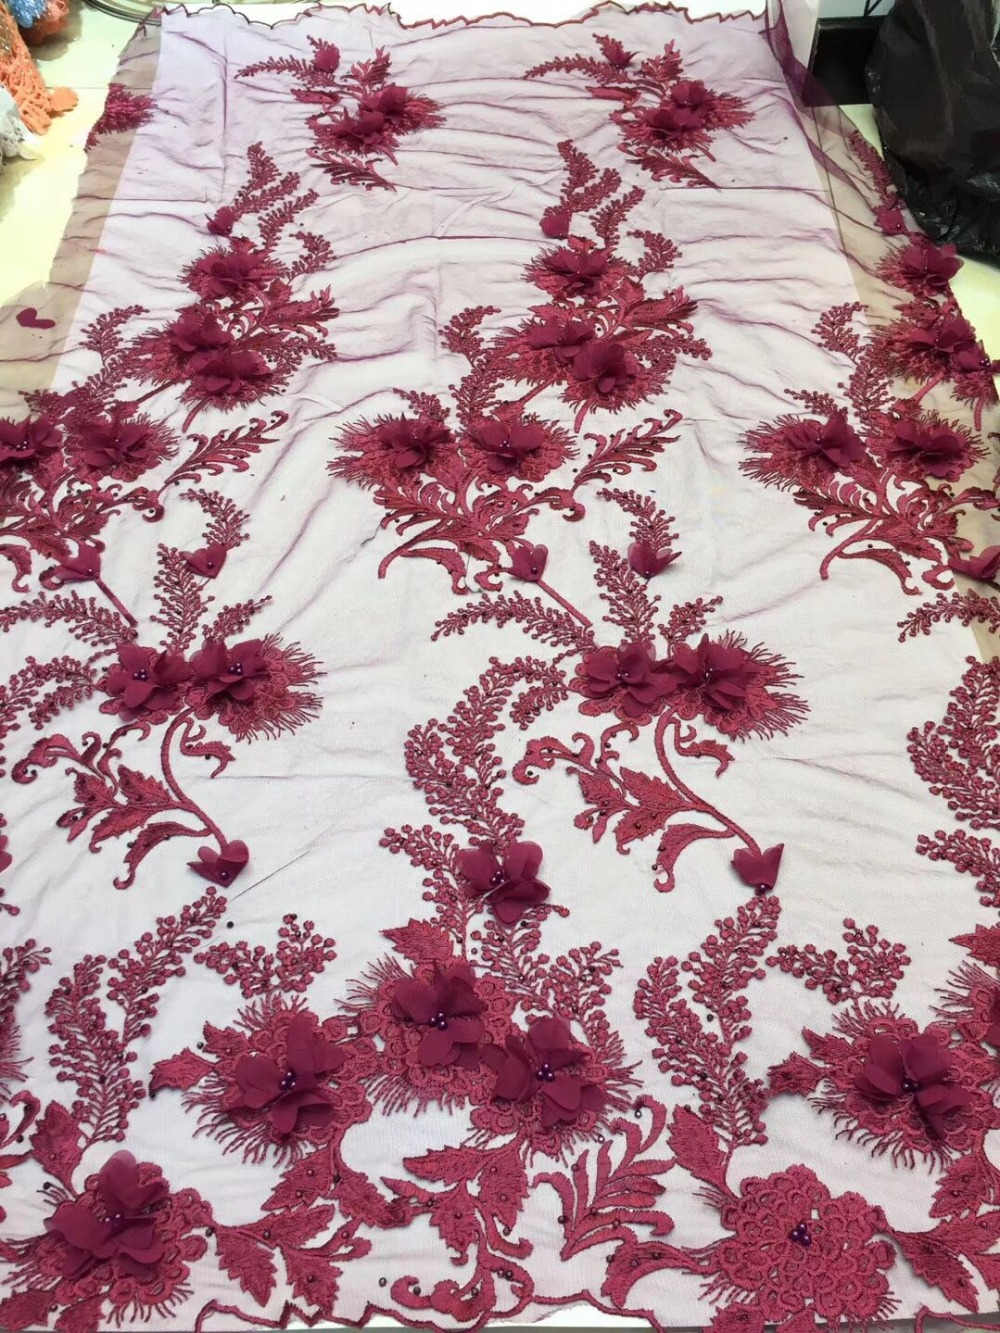 2019 African Lace Fabric red High Quality Flower 3D Applique Heavy Beaded Bridal Lace Fabric For